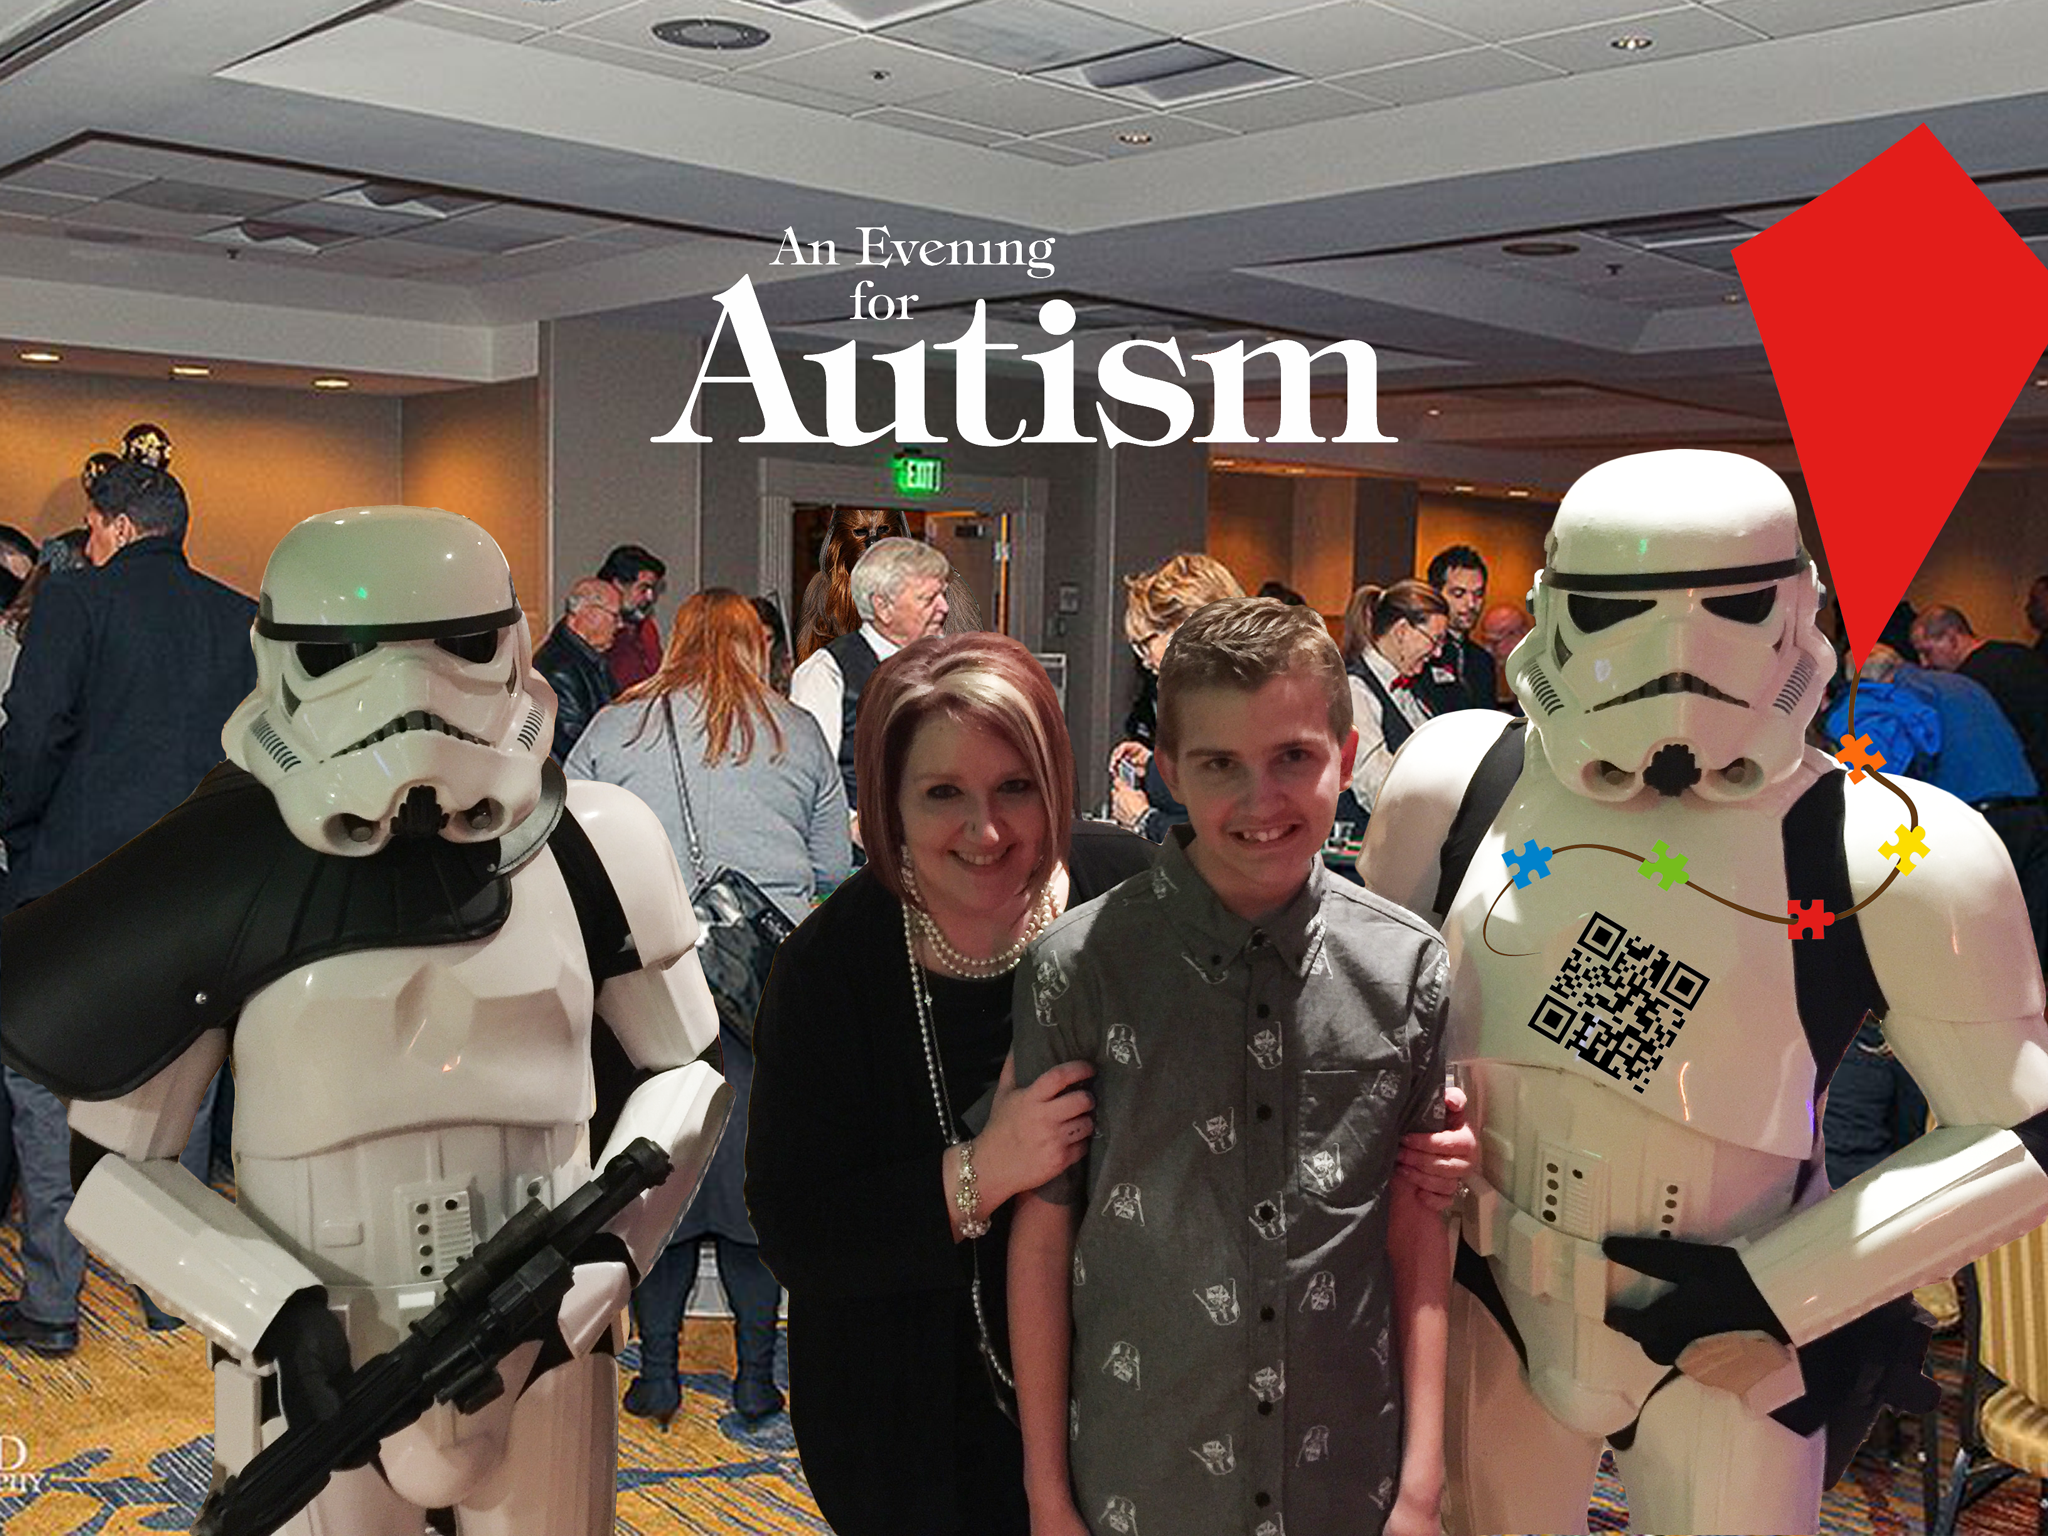 An Evening For Autism - Participants, Games, Storm Troopers, Chewbacca In Ballroom